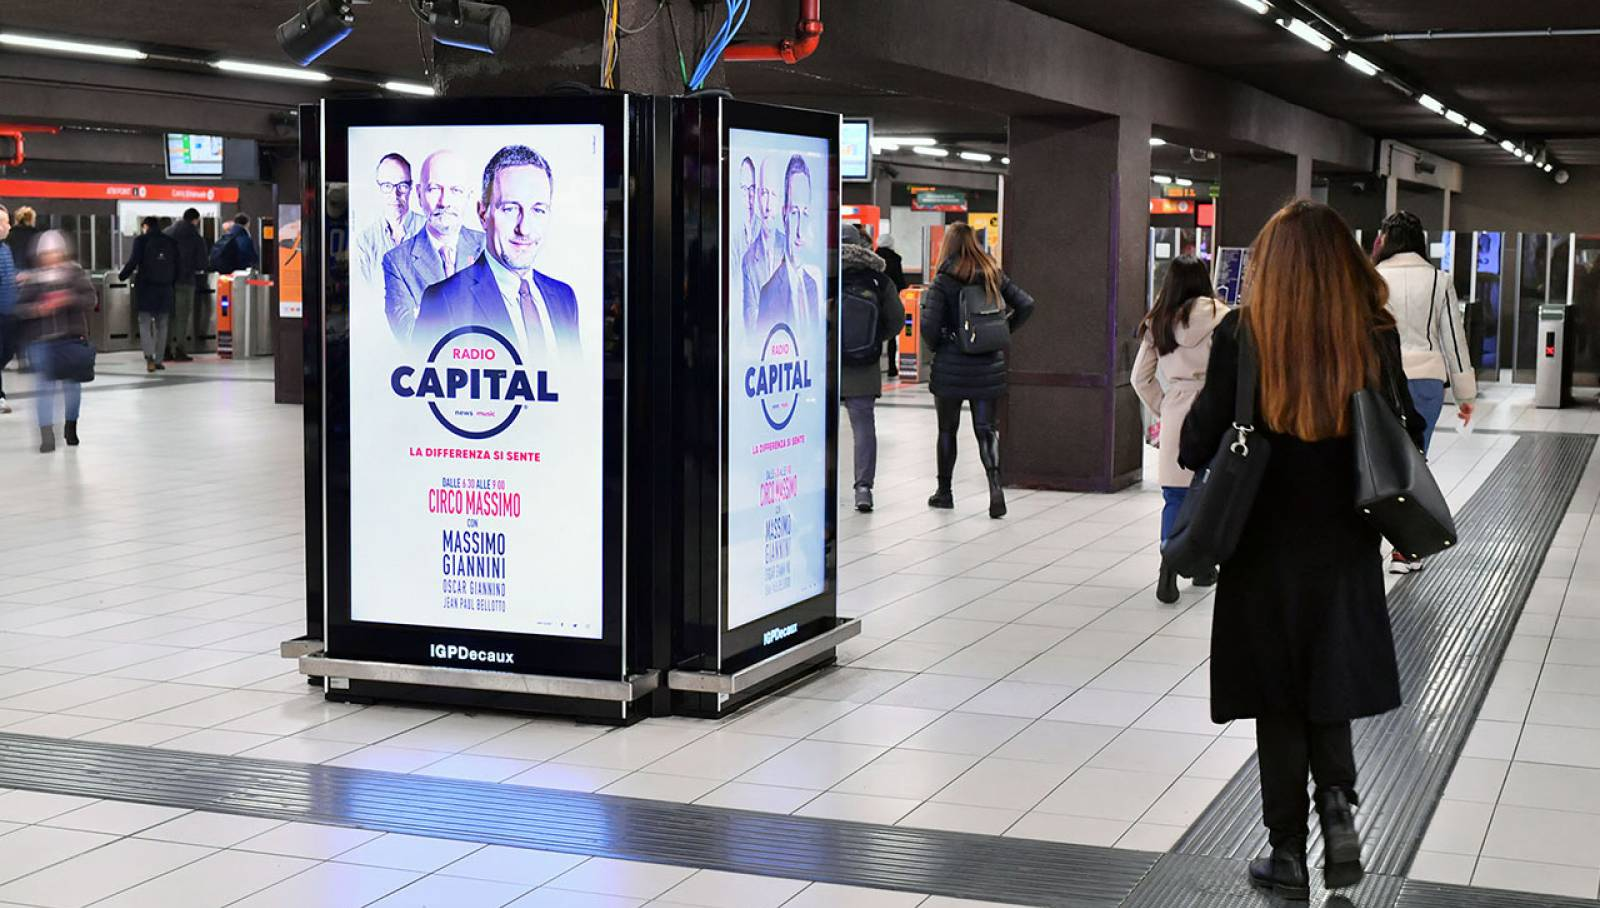 IGPDecaux Out of Home advertising in Milan Underground Vision Network for Radio Capital